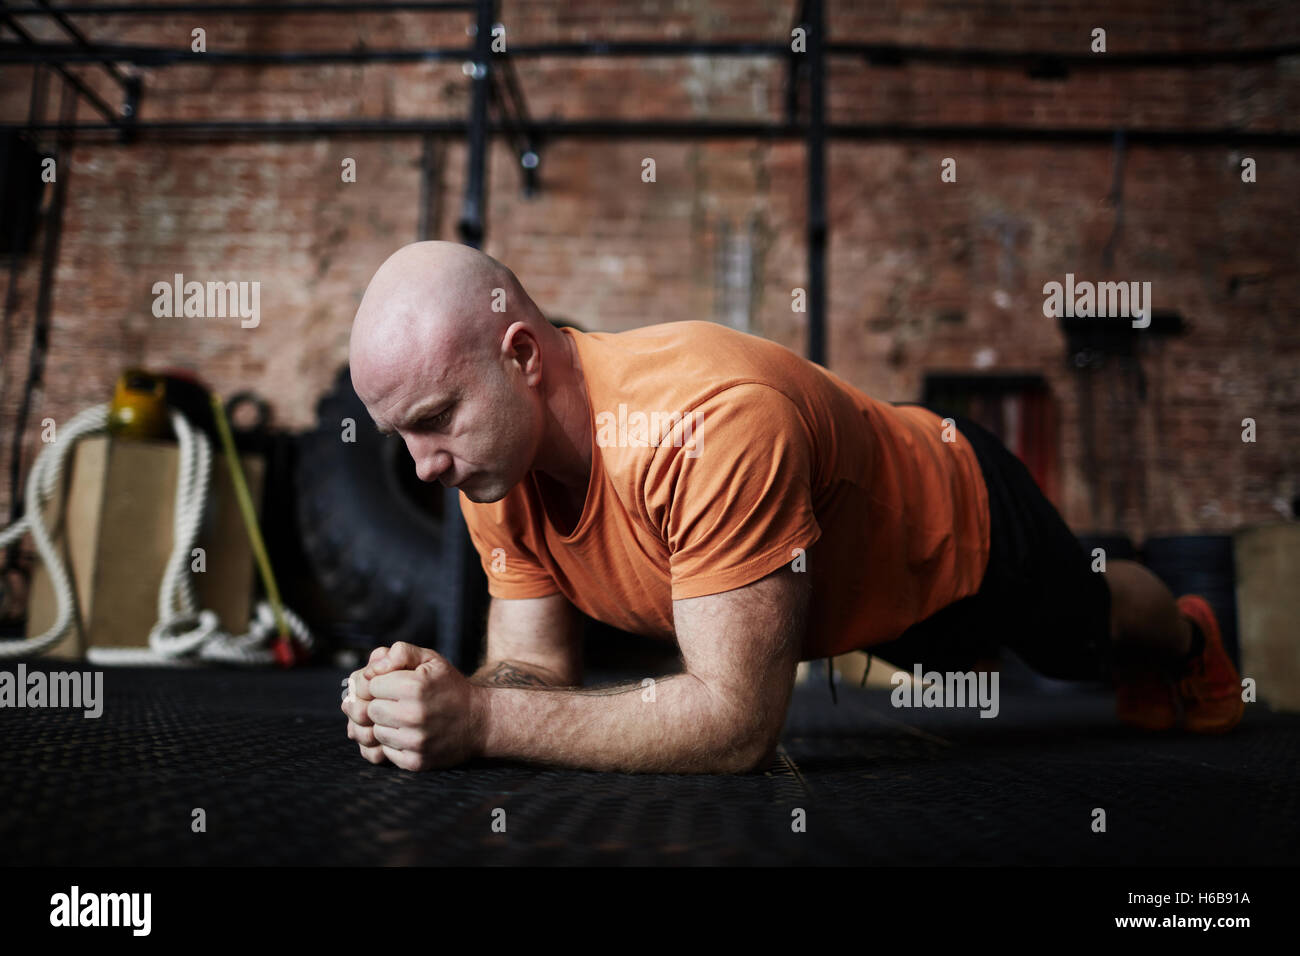 Pushing up - Stock Image